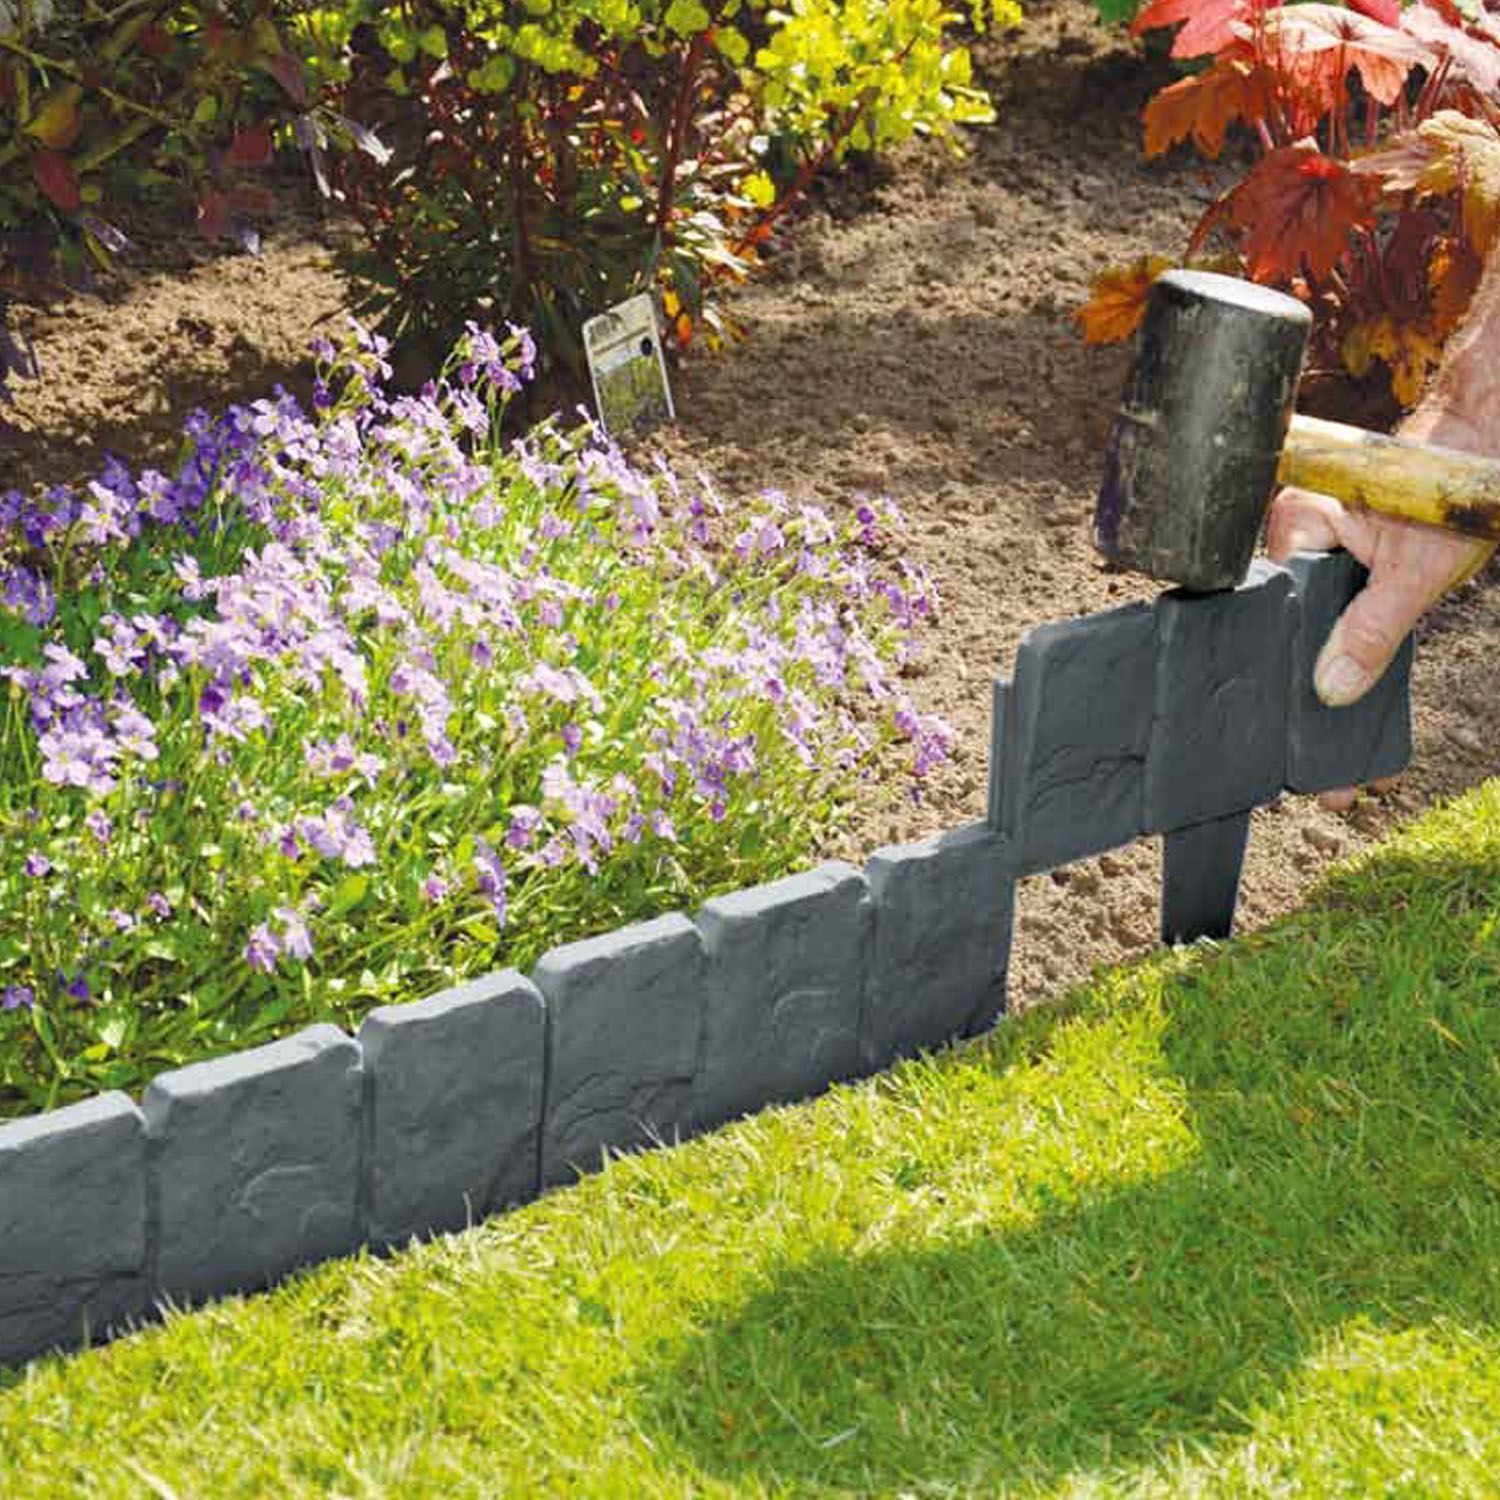 PLASTIC GARDEN EDGING LAWN BORDER EDGING PATH FLOWER